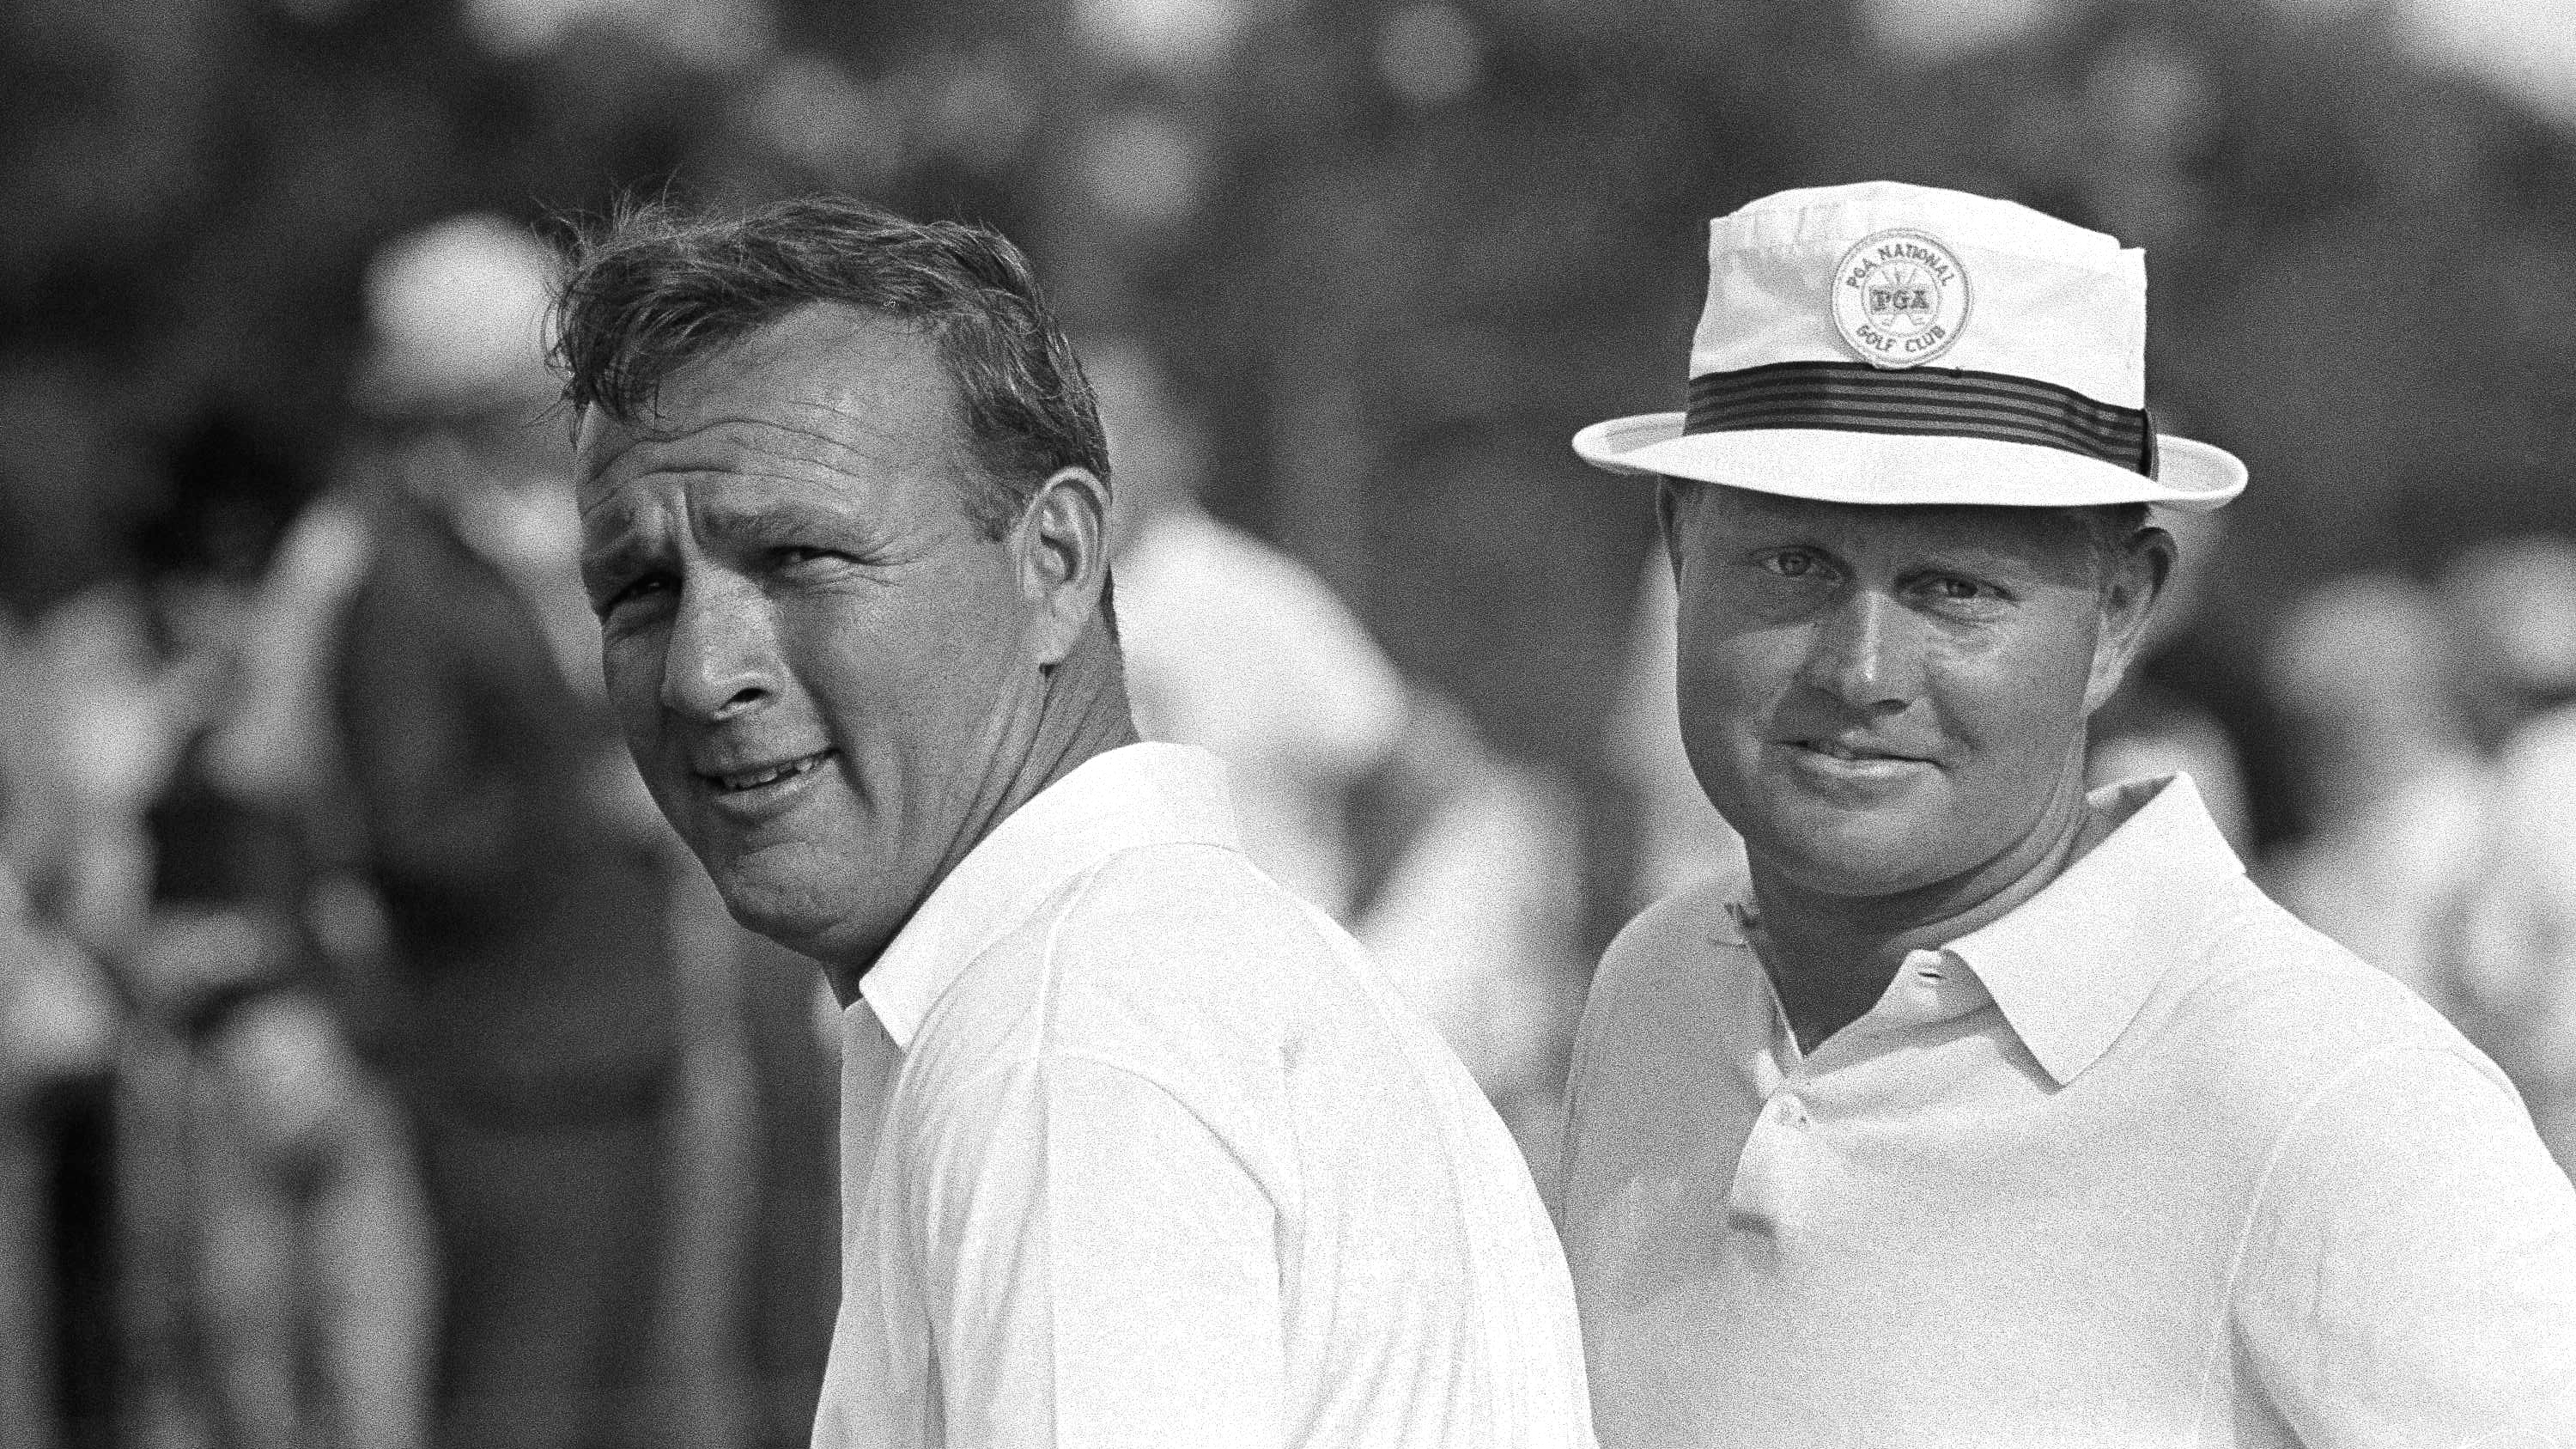 Arnold Palmer Pictures His Life In Photographs: Golfer Arnold Palmer, Who Gave New Life To A Staid Game